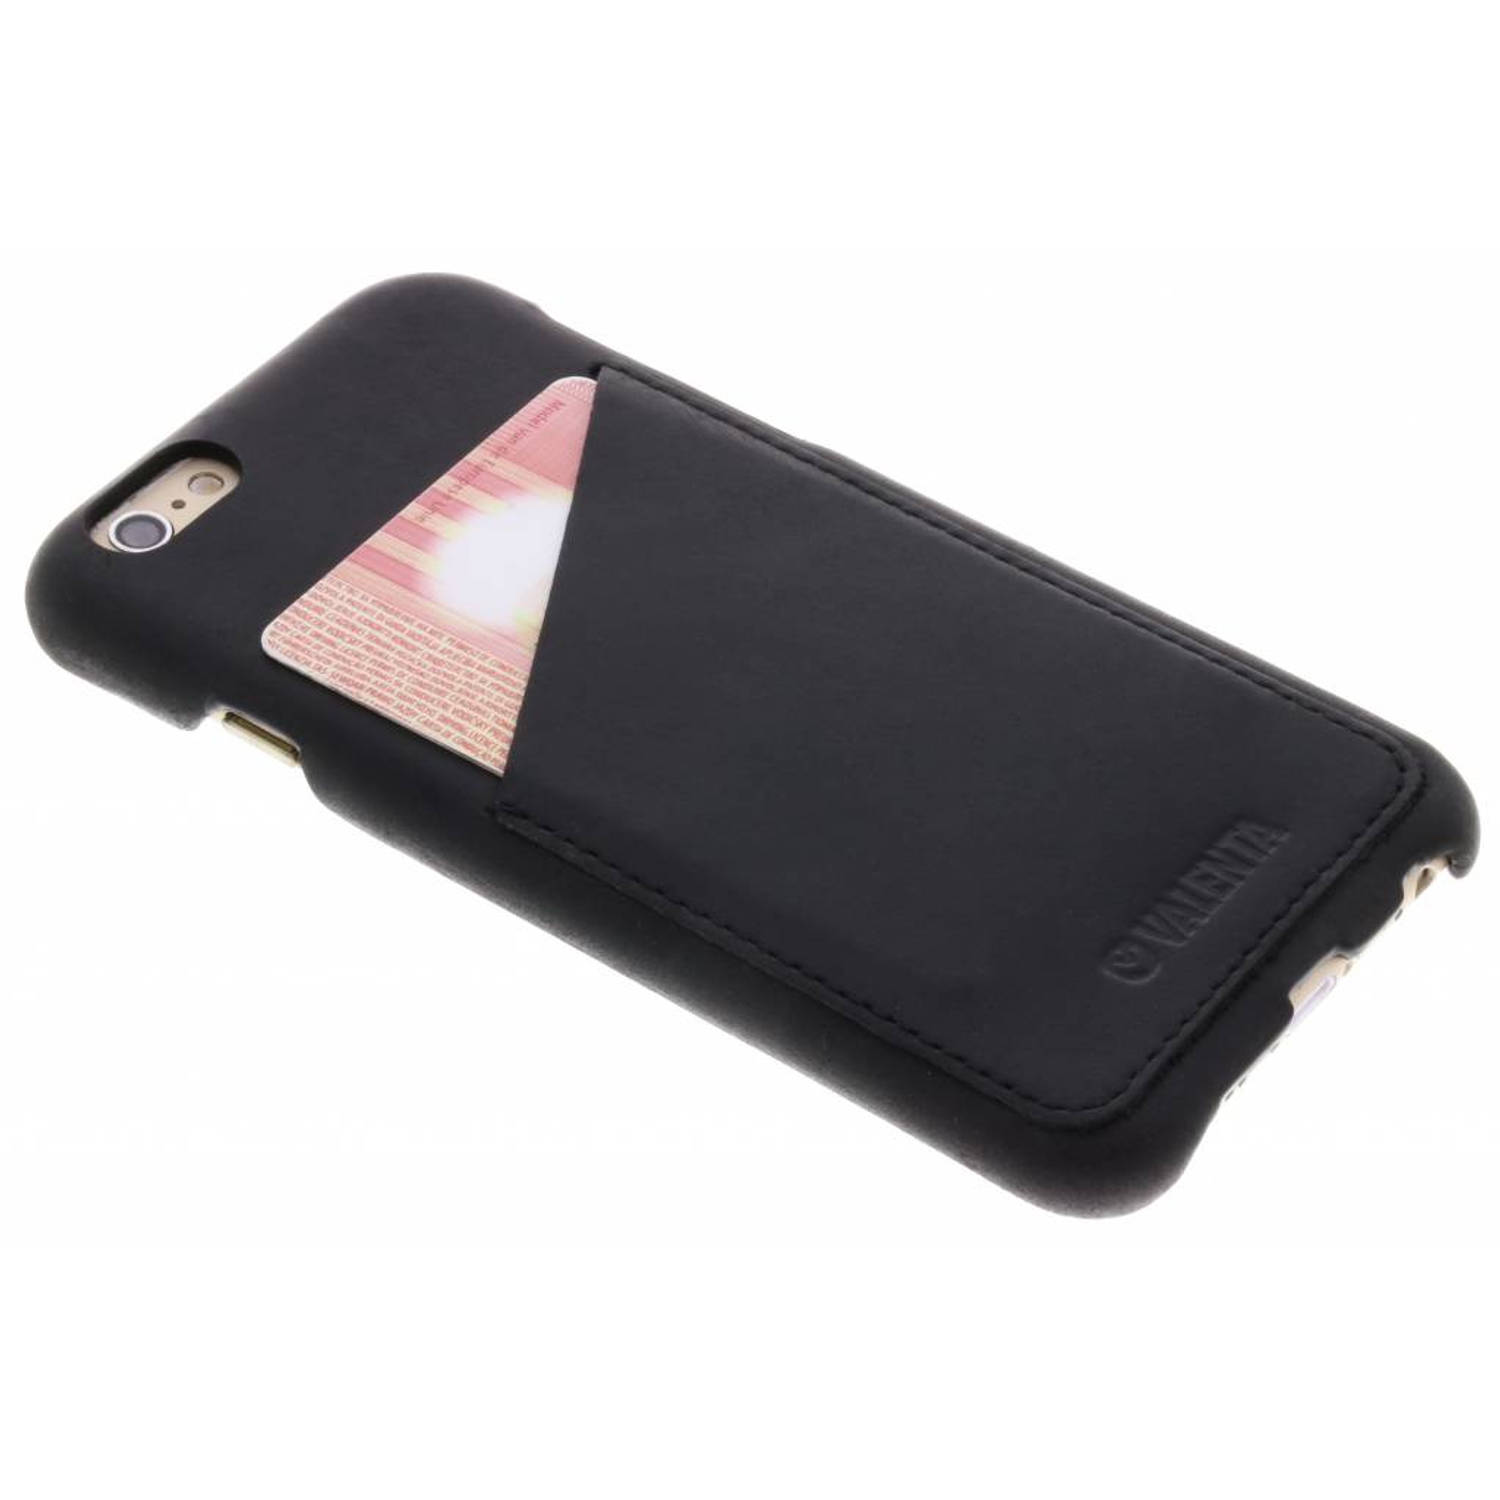 Zwarte Back Cover Classic voor de iPhone 6 / 6s